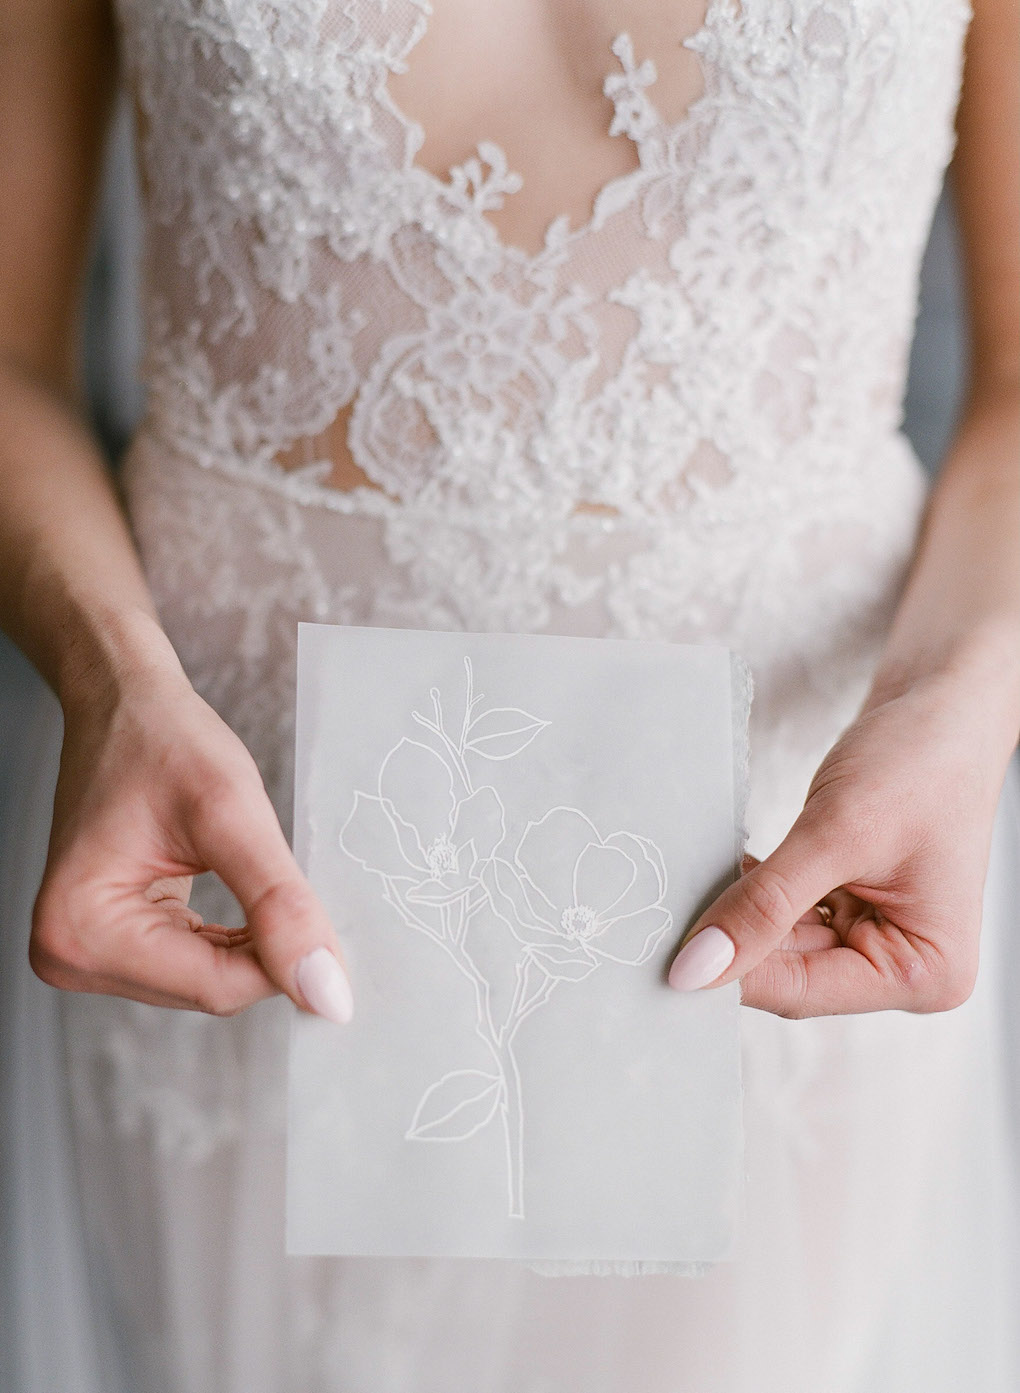 Bridal Stationary Inspo: Soft and Subtle Palettes of Spring Blossoms | Editorial Shoot at The Renaissance Pittsburgh by Exhale Events. See more inspiration at exhale-events.com!